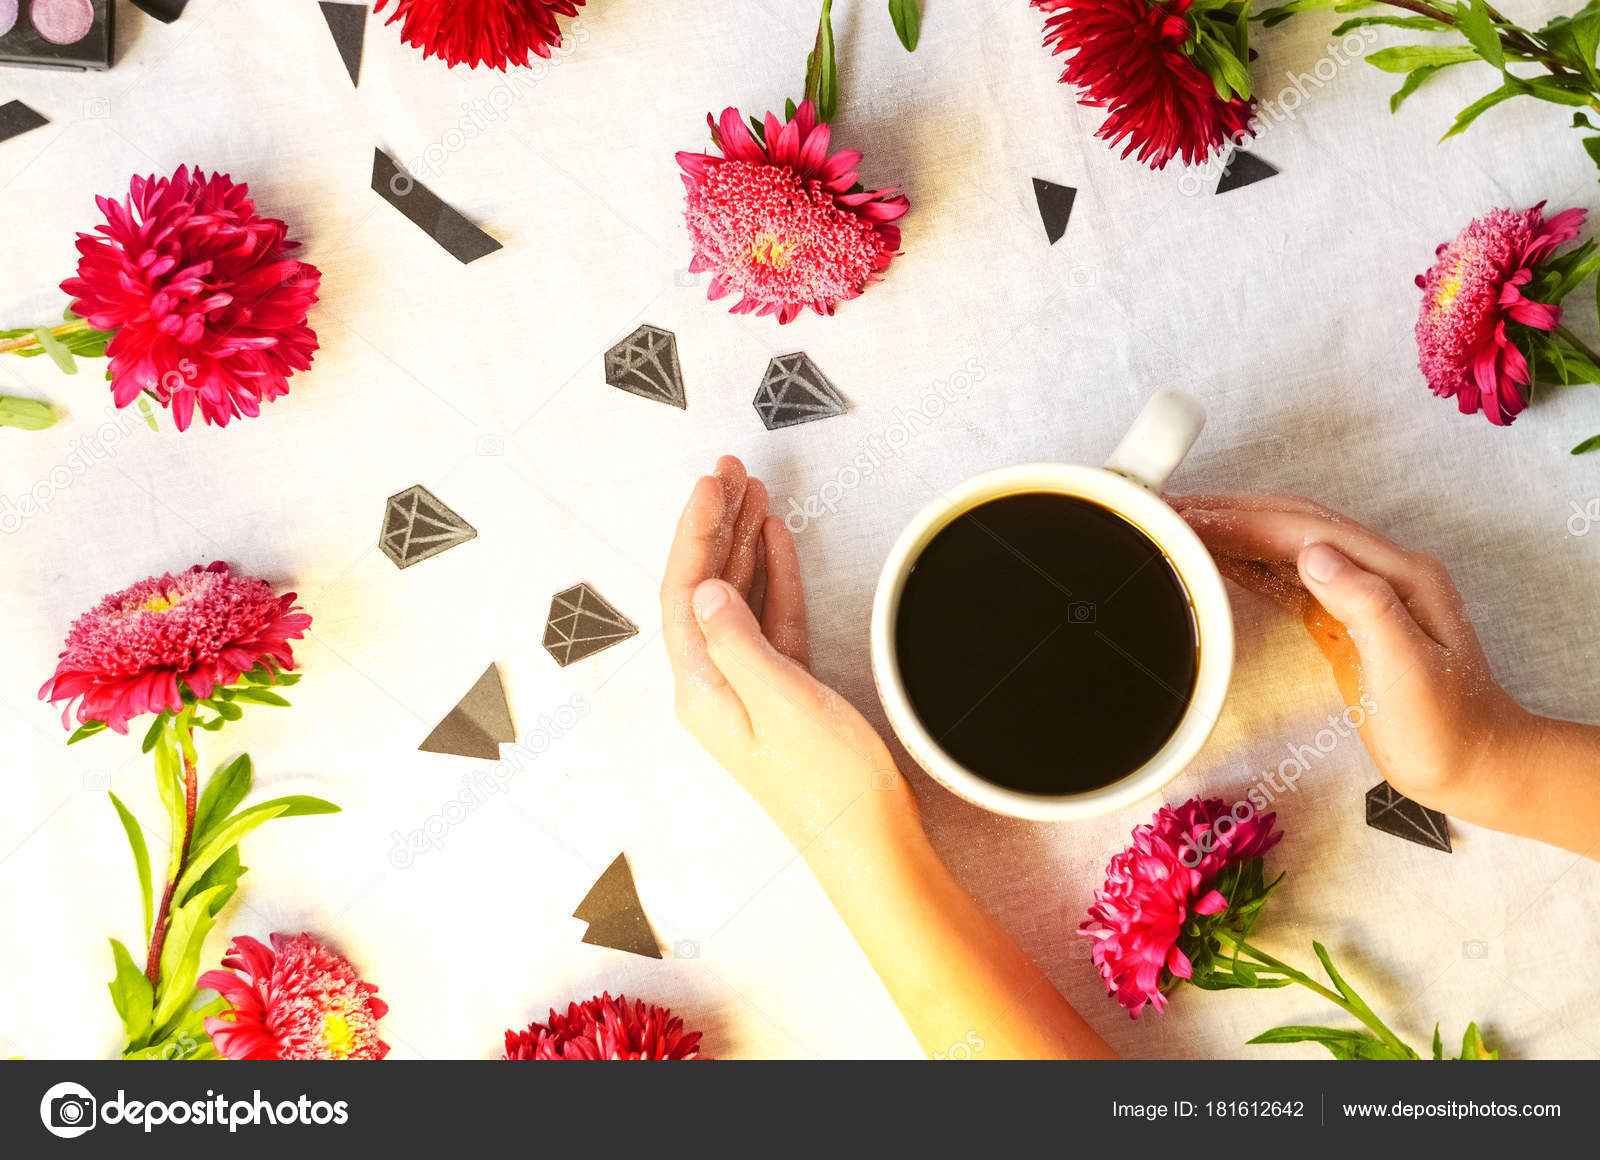 Morning coffee spring day flowers diamonds sequins view background morning coffee spring day flowers diamonds sequins view background texture stock photo mightylinksfo